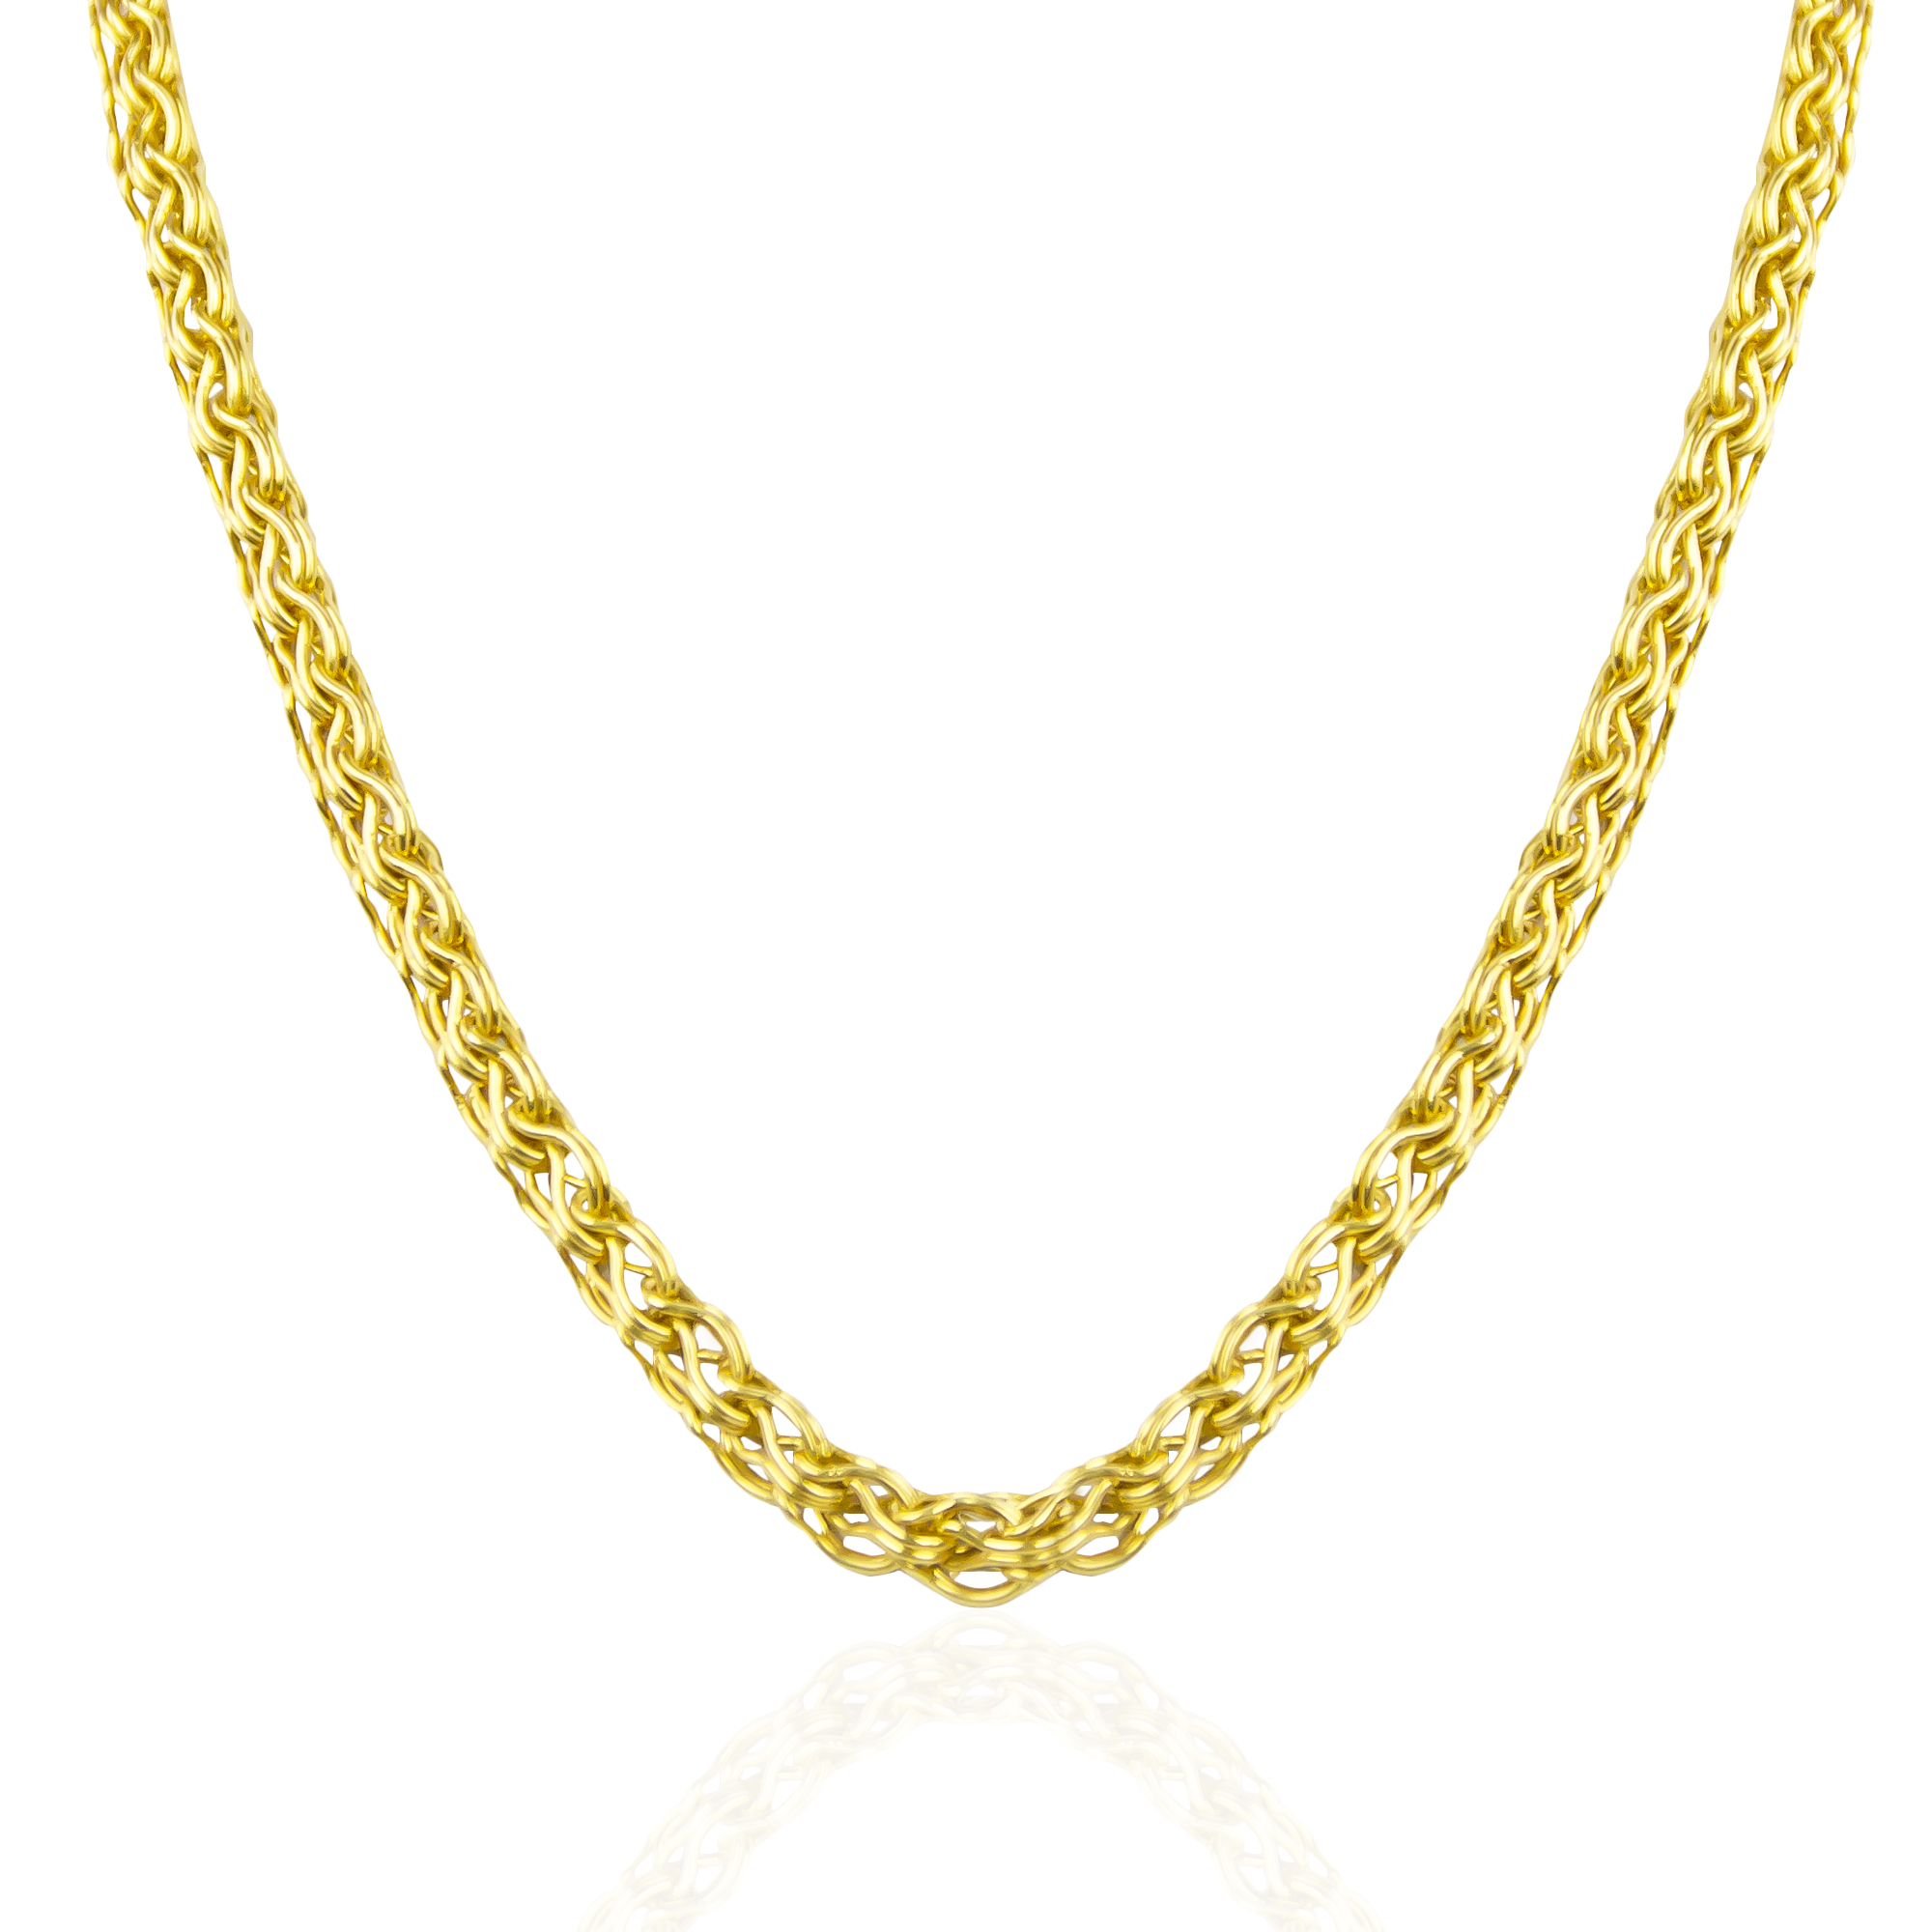 24k White Gold Necklace Mens